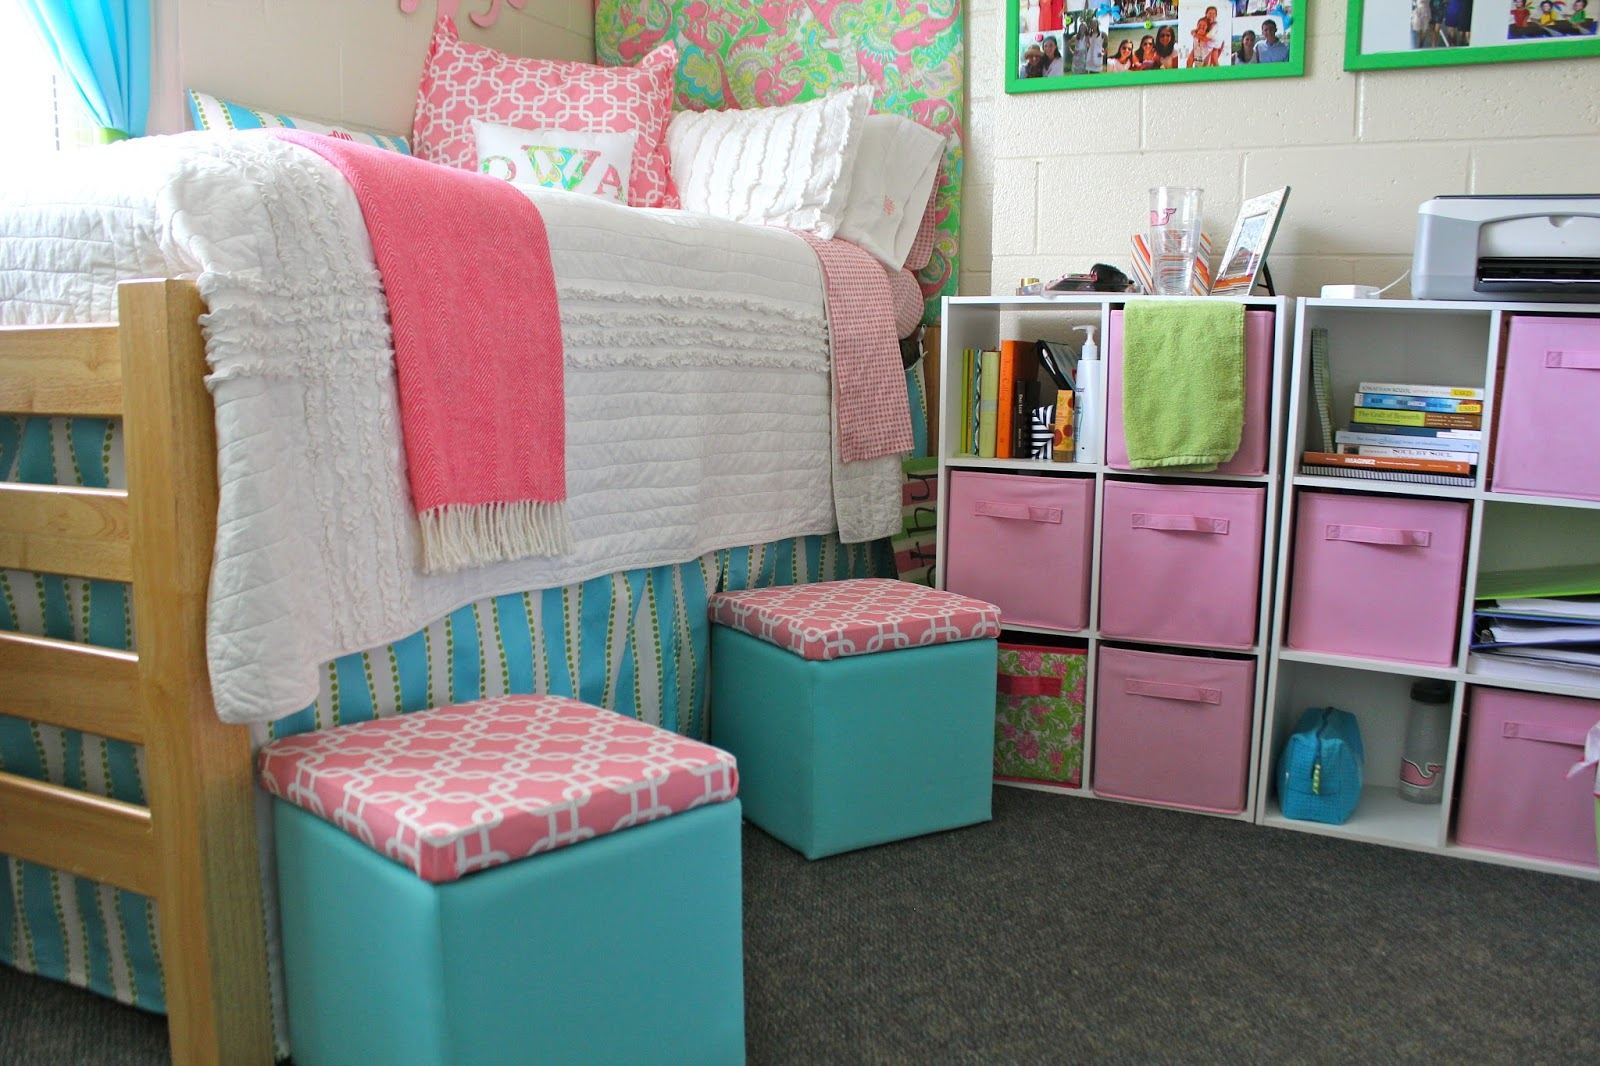 25 well designed dorm rooms to inspire you dorm room - College dorm storage ideas ...